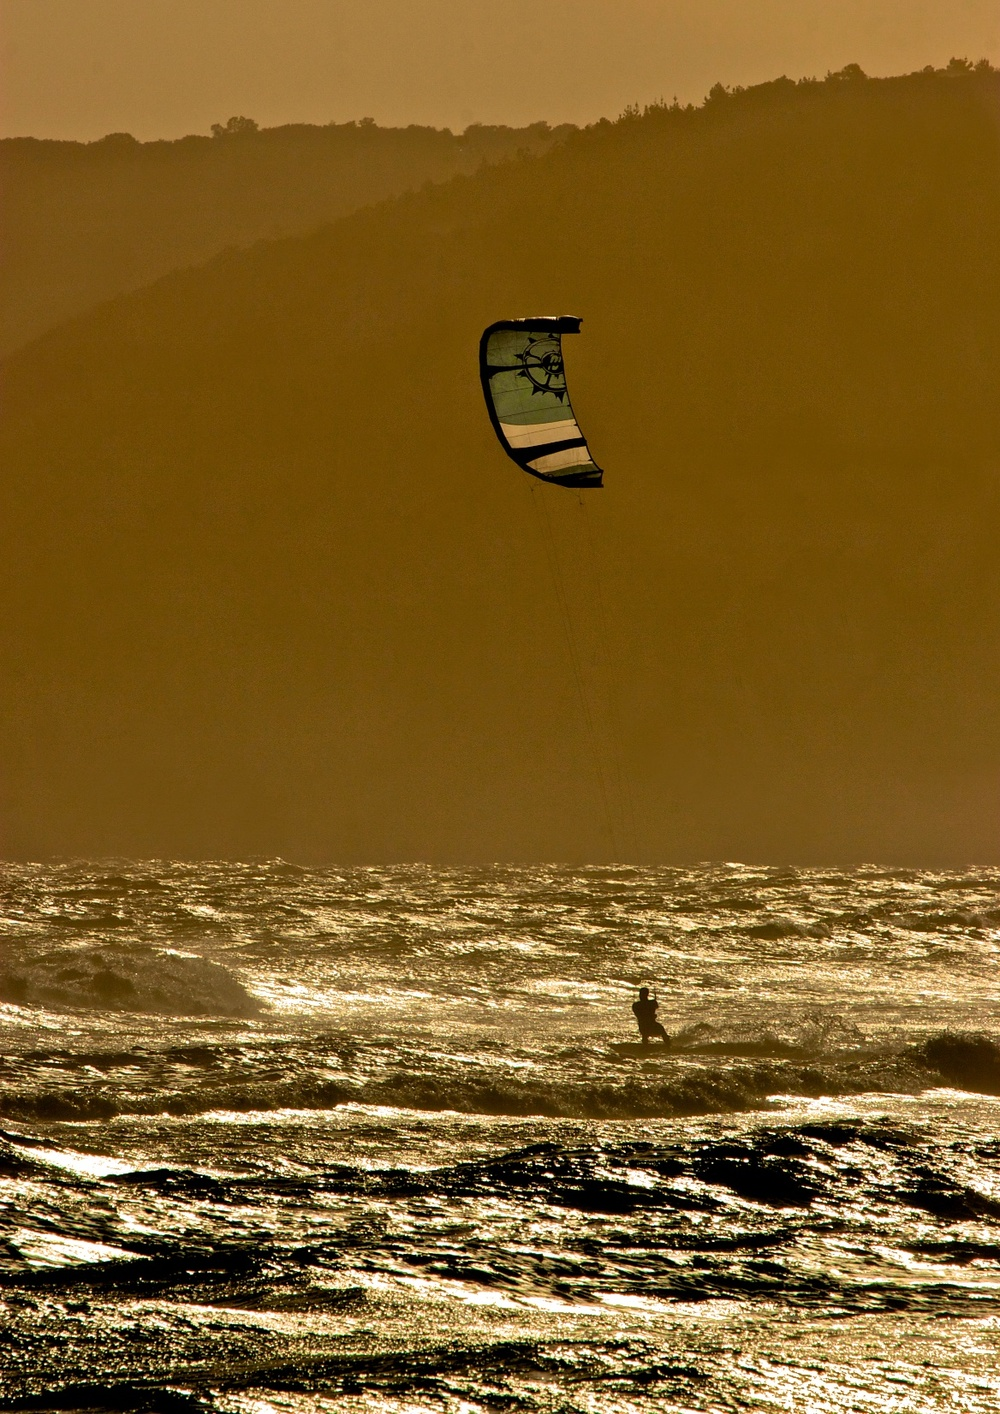 Windsurfing where the Atlantic and the Indian oceans clash. South Africa.